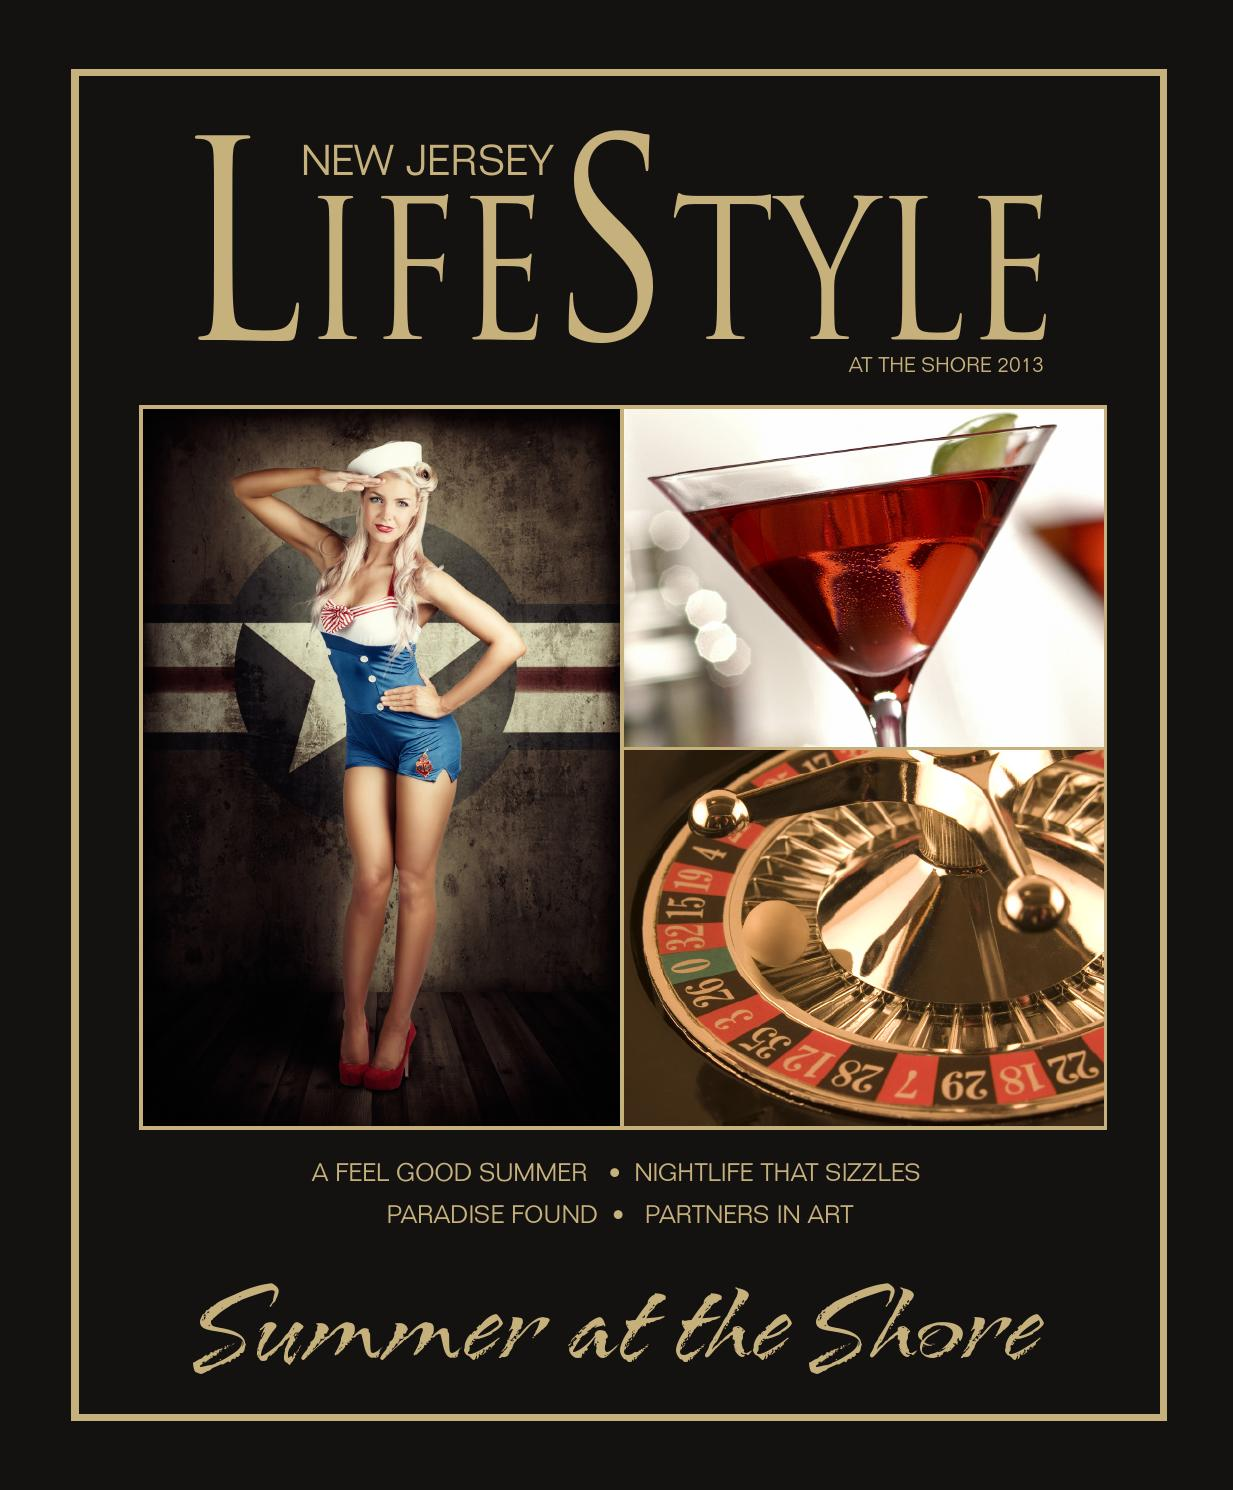 Nj Lifestyle Shore 2013 Issue By Nj Lifestyle Magazine Issuu